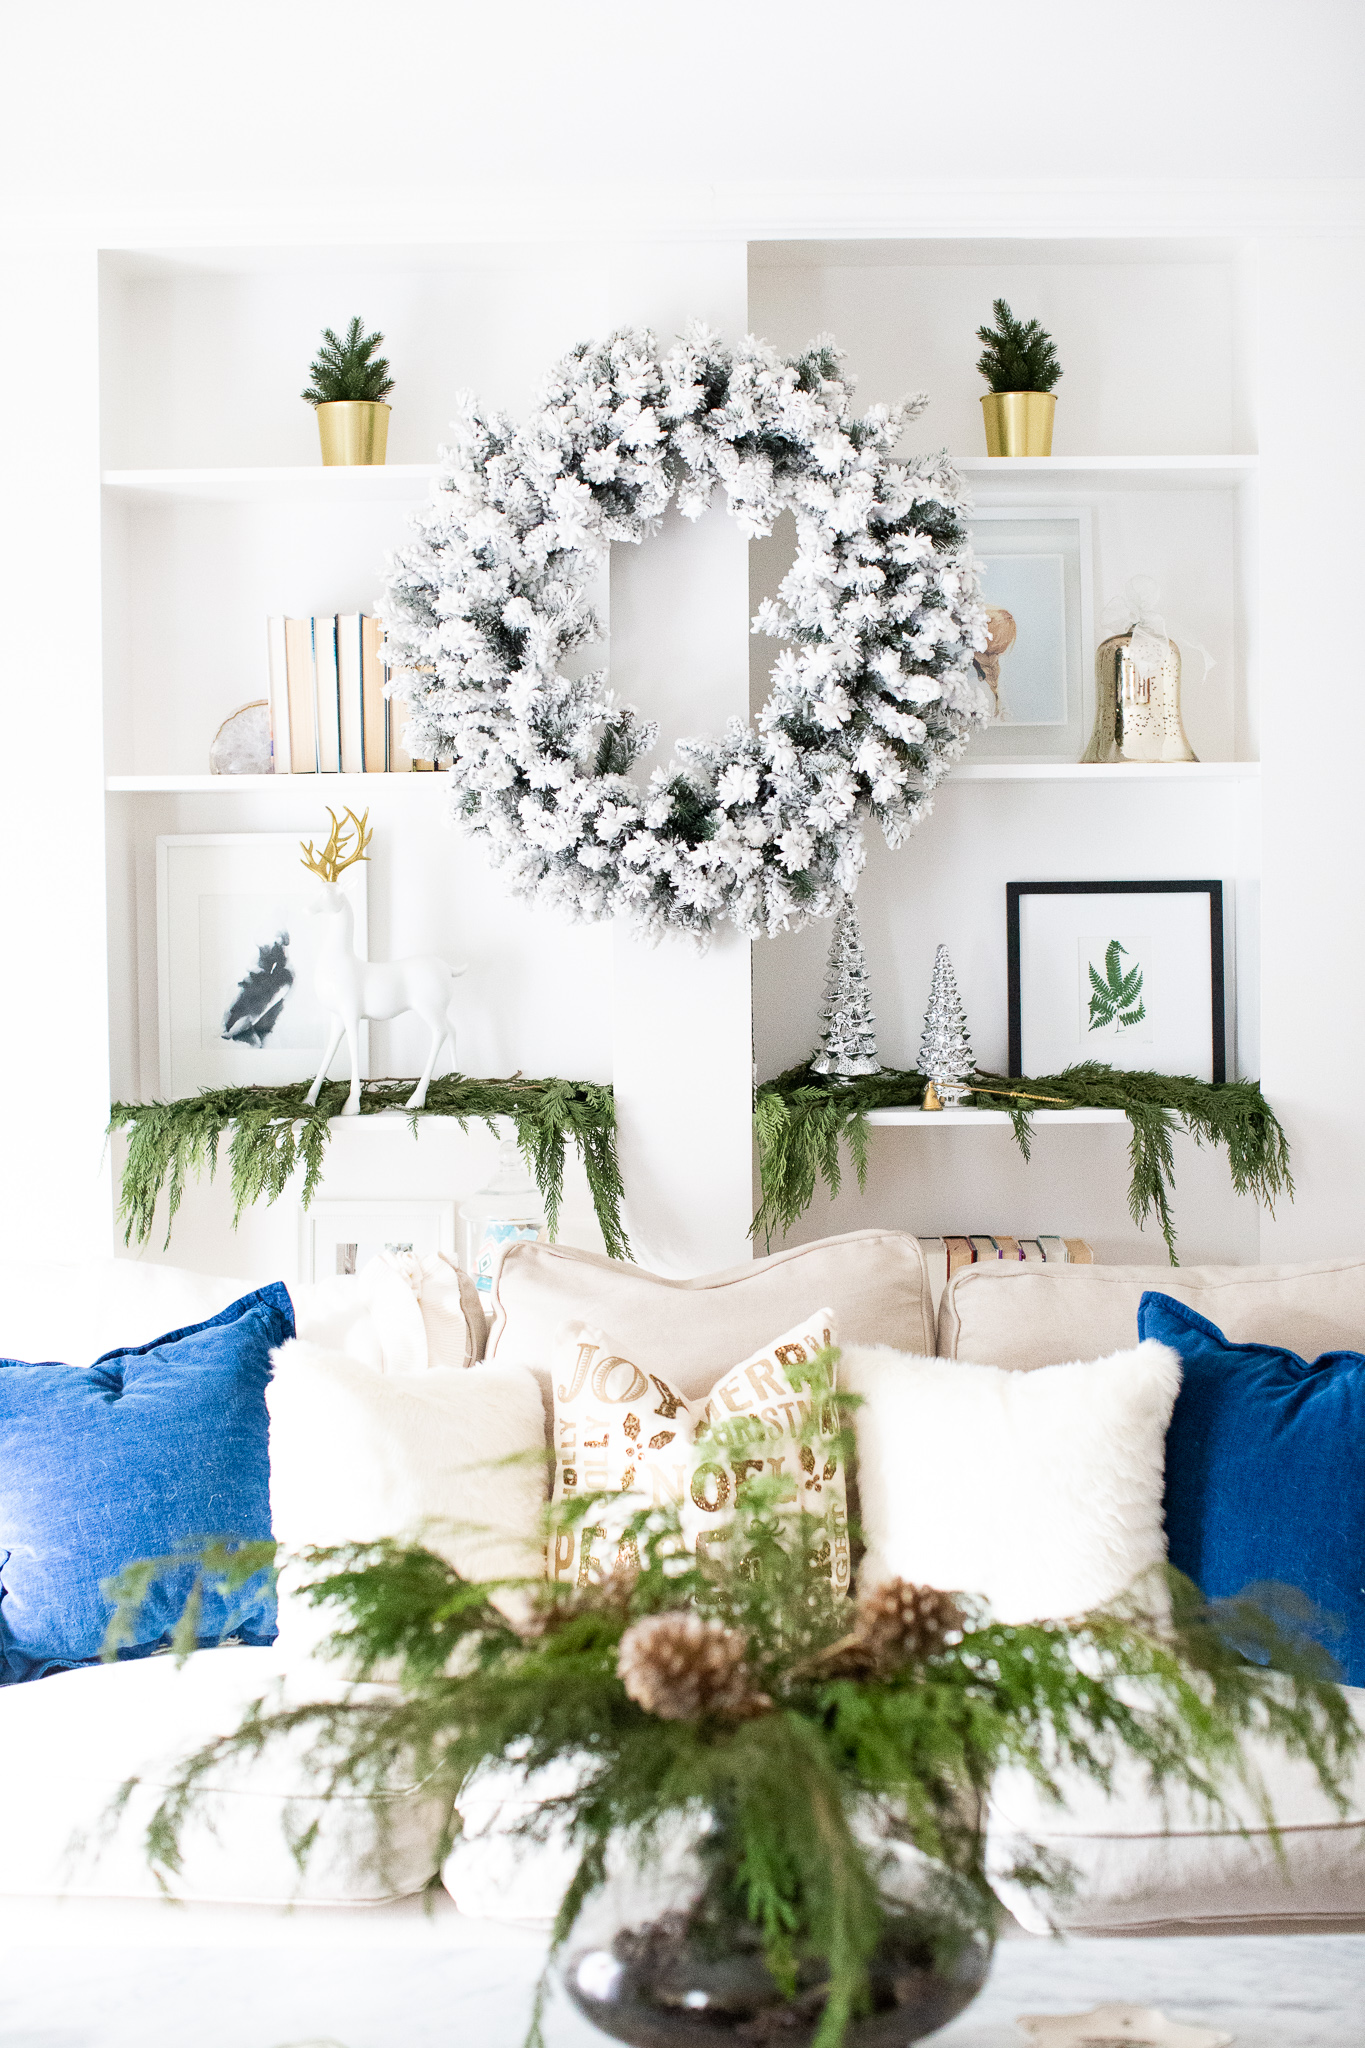 Decorating your house for Christmas? These 4 beautiful and unique Holiday home tours are sure to get you inspired this holiday season! | glitterinc.com | @glitterinc